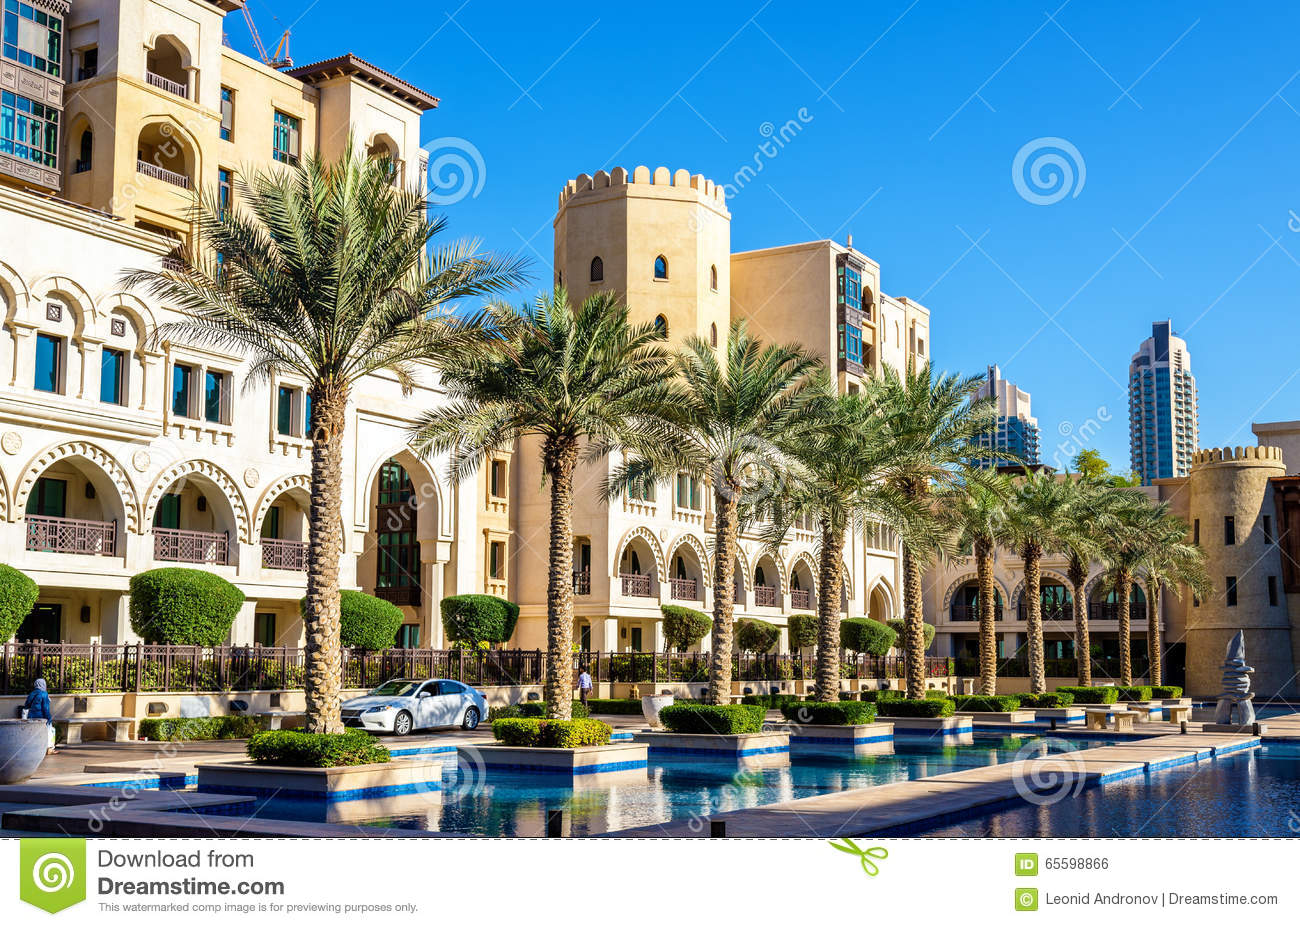 buildings on the old town island in dubai stock photo image of island hotel 65598866. Black Bedroom Furniture Sets. Home Design Ideas